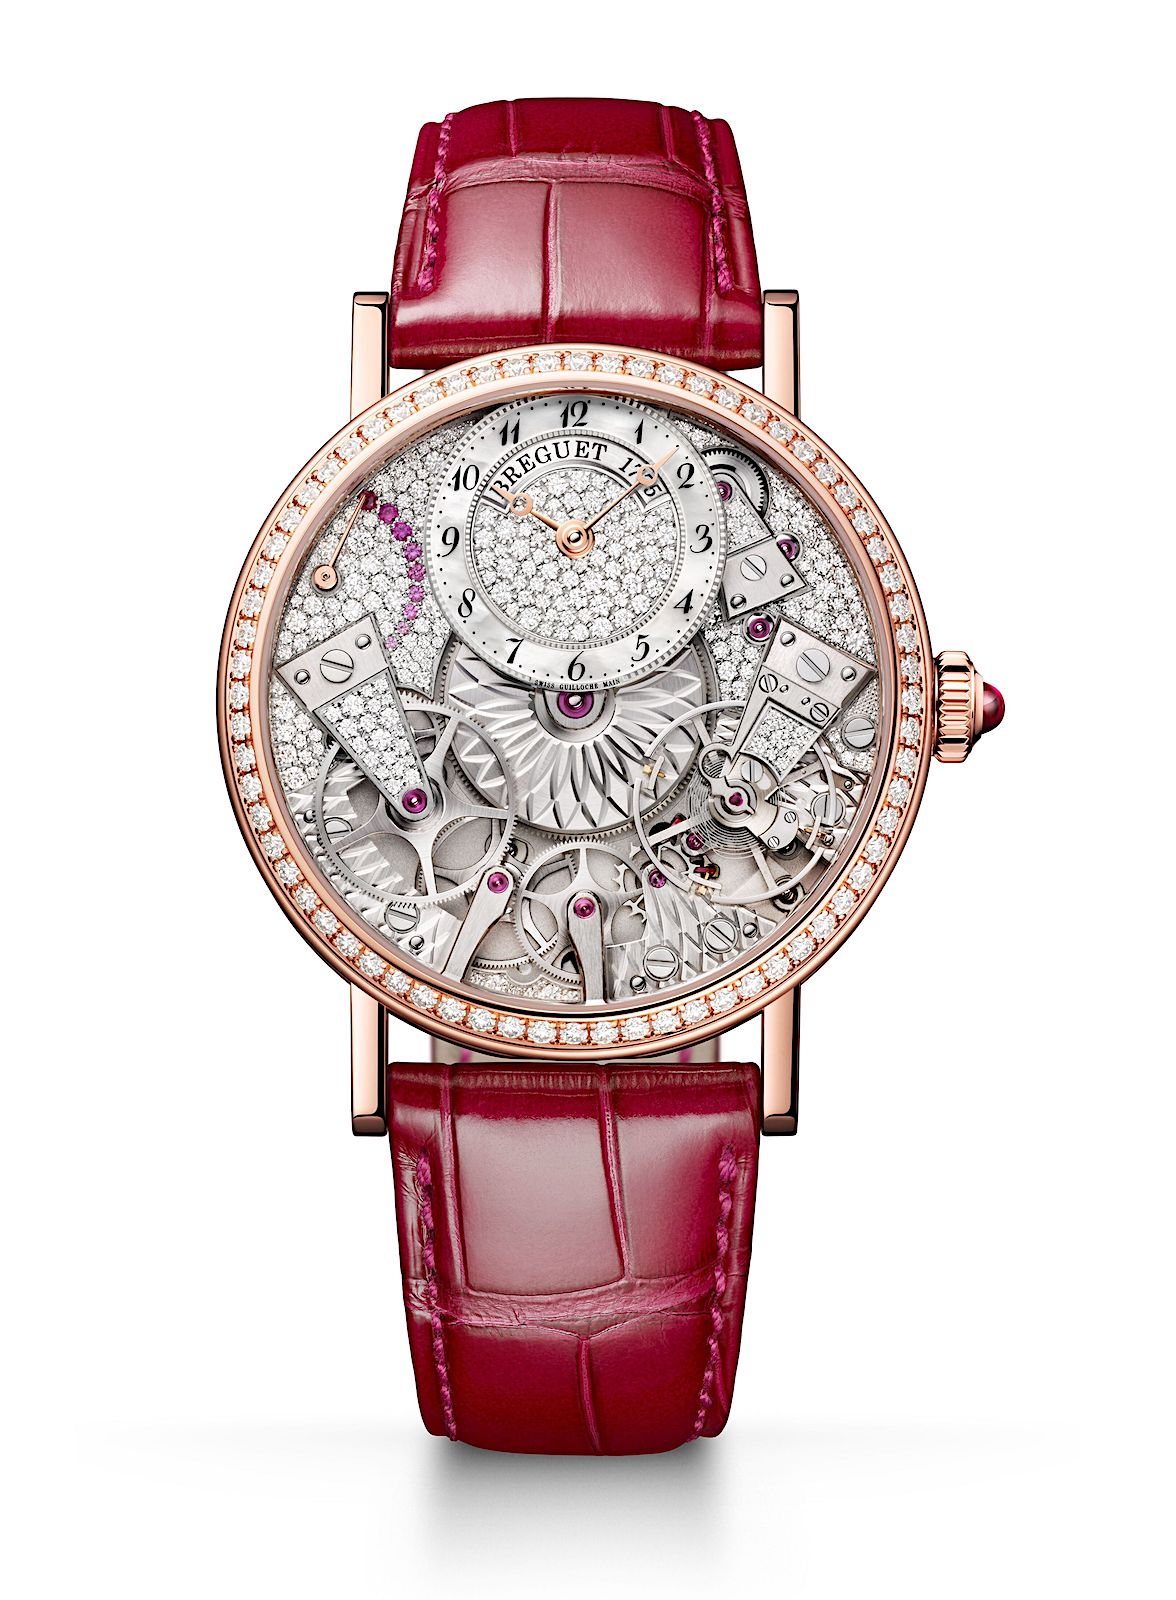 Breguet Tradition 7035 Frontal